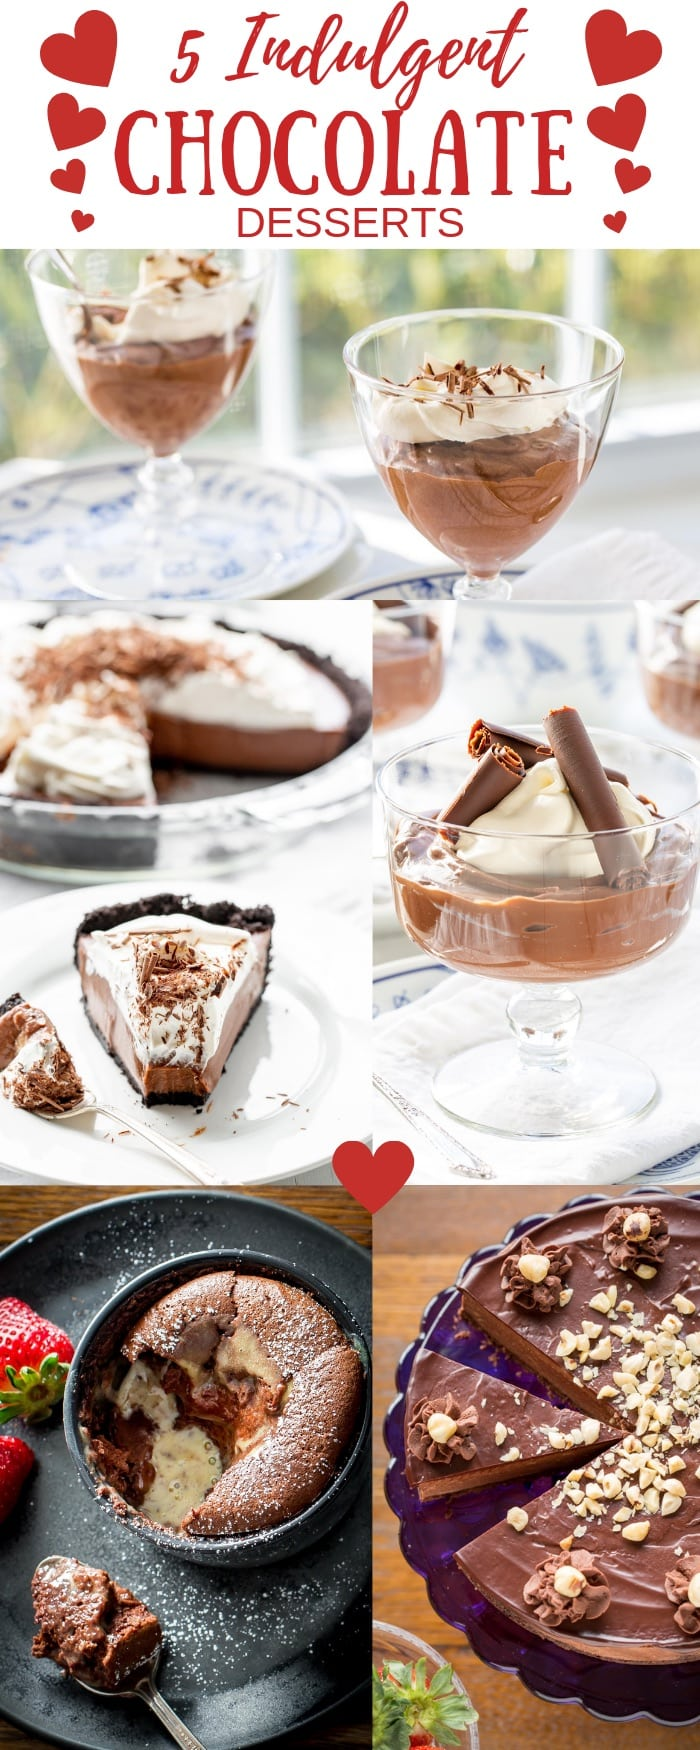 5 Indulgent Chocolate Dessert Recipes for Valentine's Day - Make something utterly luscious for the one you love! #savingroomfordessert #valentinesday #chocolatedesserts #chocolate #lusciousdesserts #valentinedessert